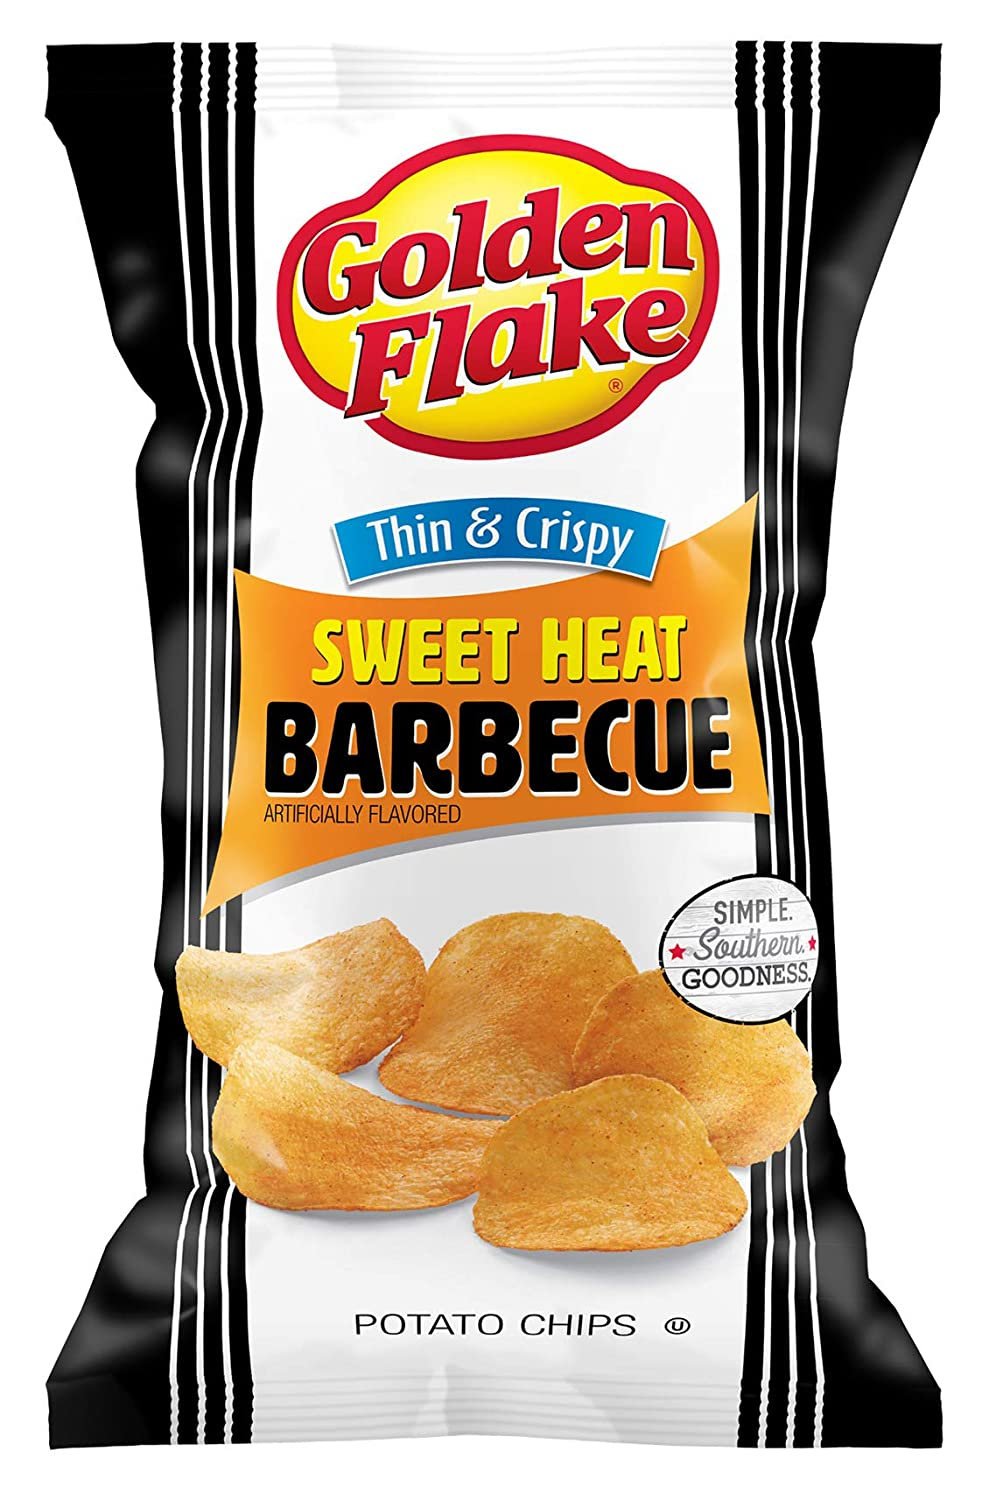 Golden Flake Sweet Heat BBQ Thin Potato Crispy 4.625 and Rare O Recommendation Chips